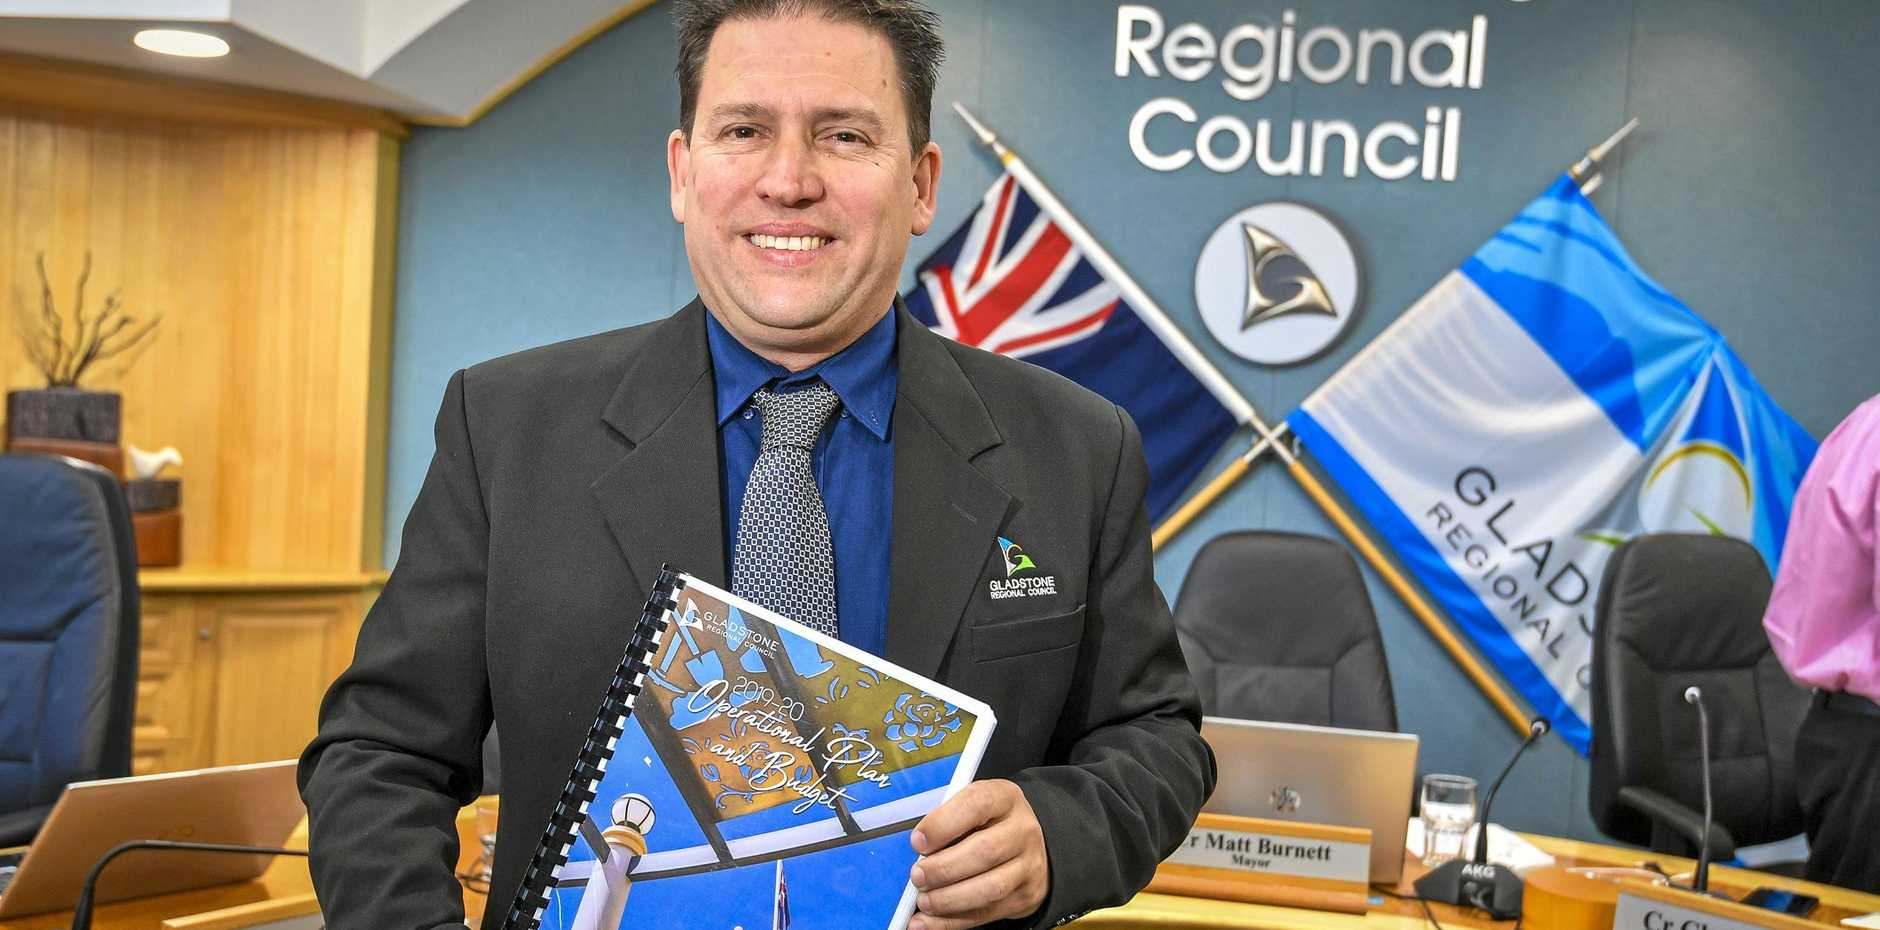 Gladstone Mayor Matt Burnett delivered the 2019-20 council budget at Gladstone Regional Council Chambers on 17 July 2019.